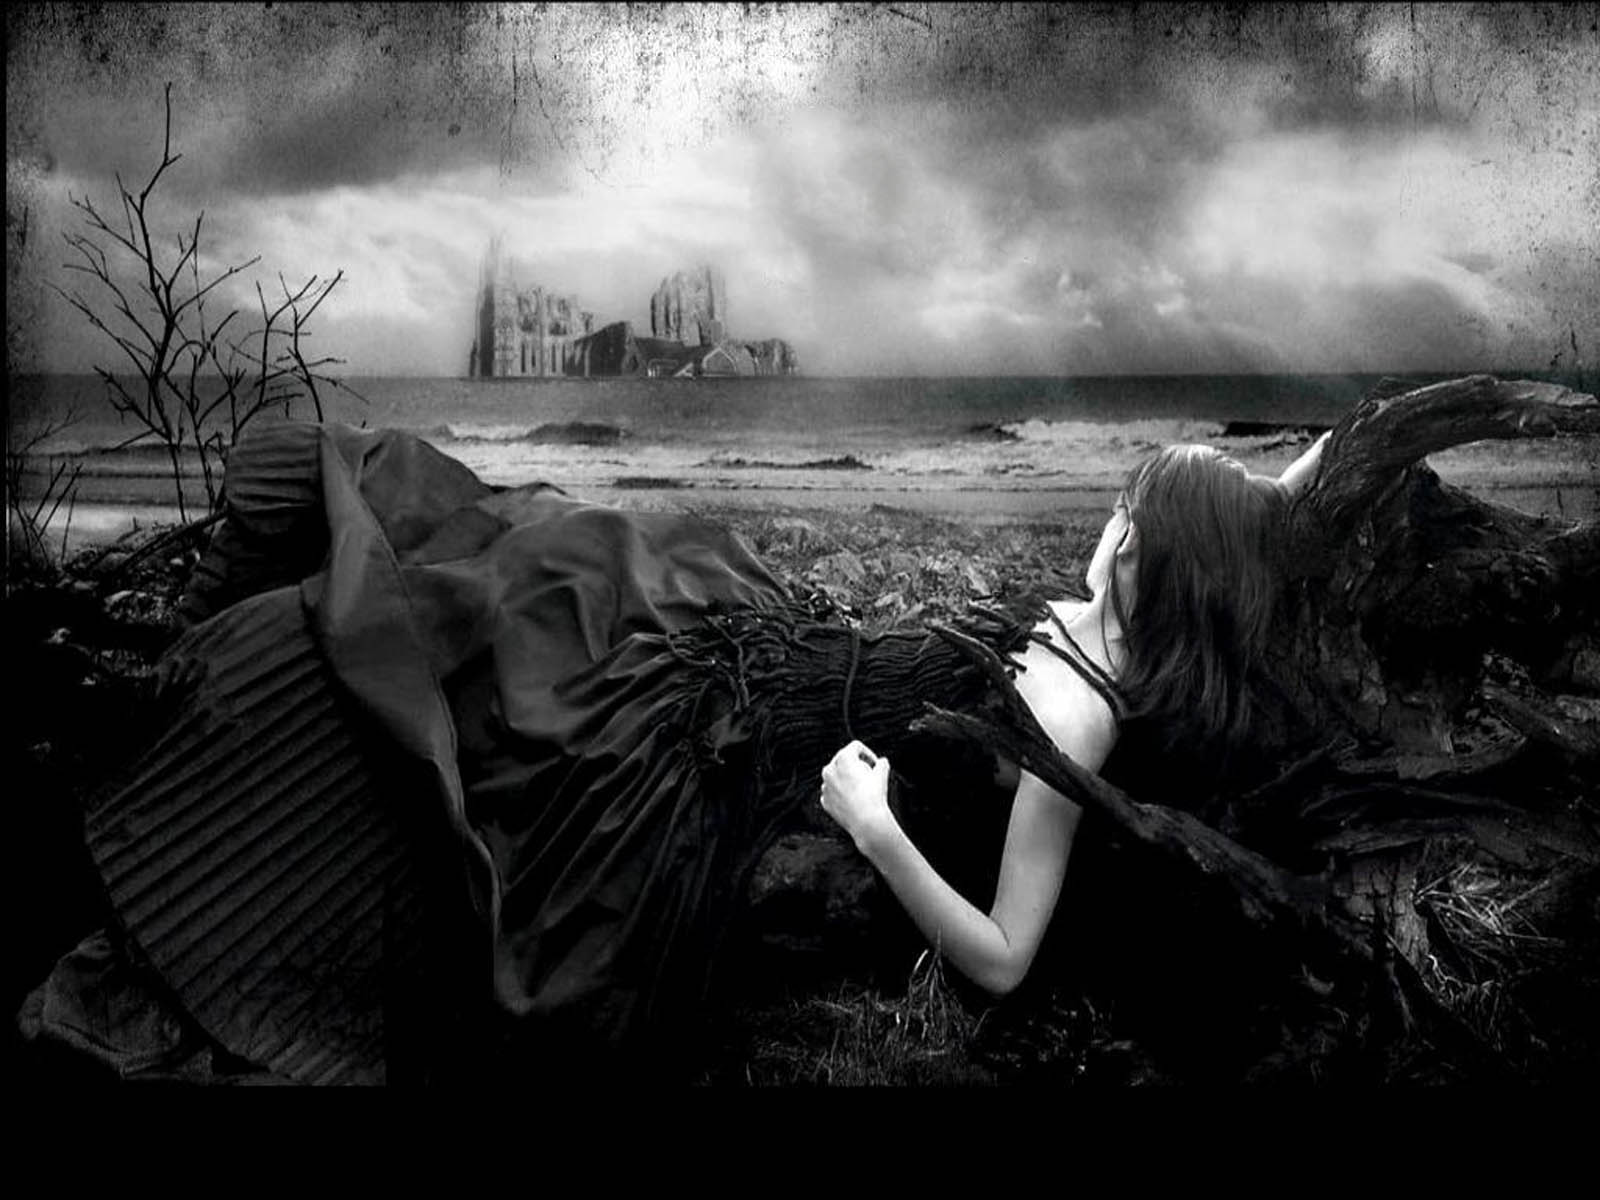 the dark gothic wallpapers dark gothic desktop wallpapers dark gothic 1600x1200